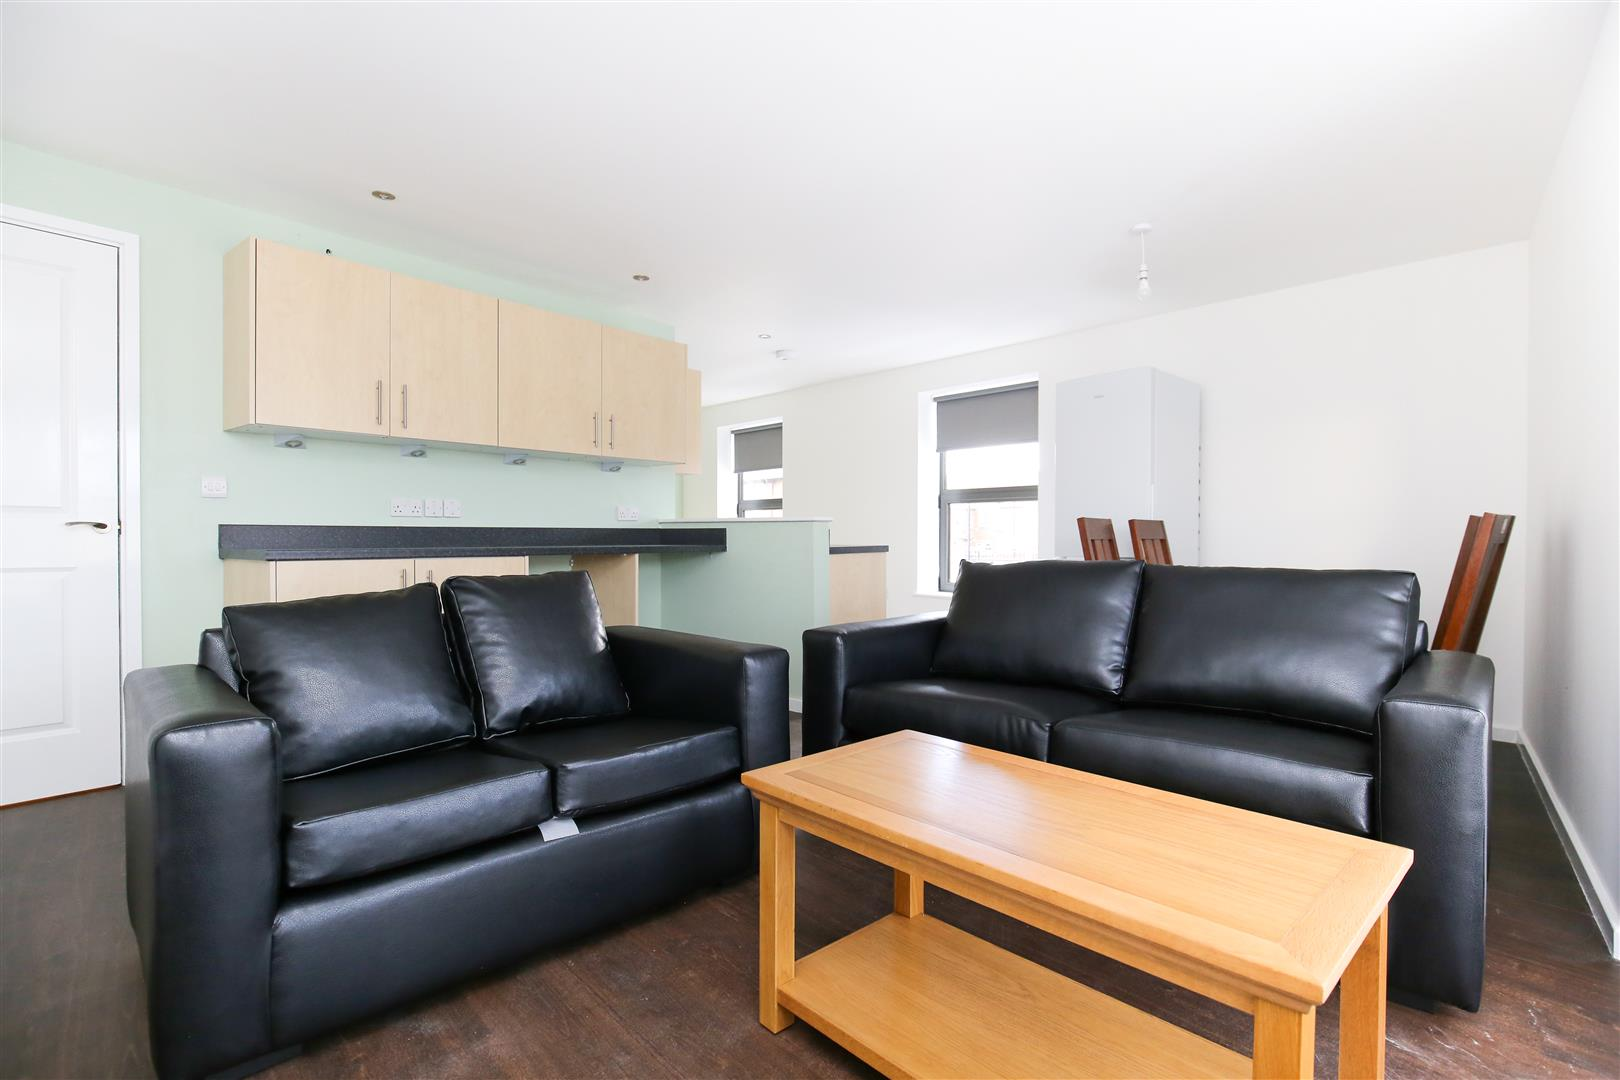 3 bed apartment to rent in Newcastle Upon Tyne, NE6 5BL - Property Image 1